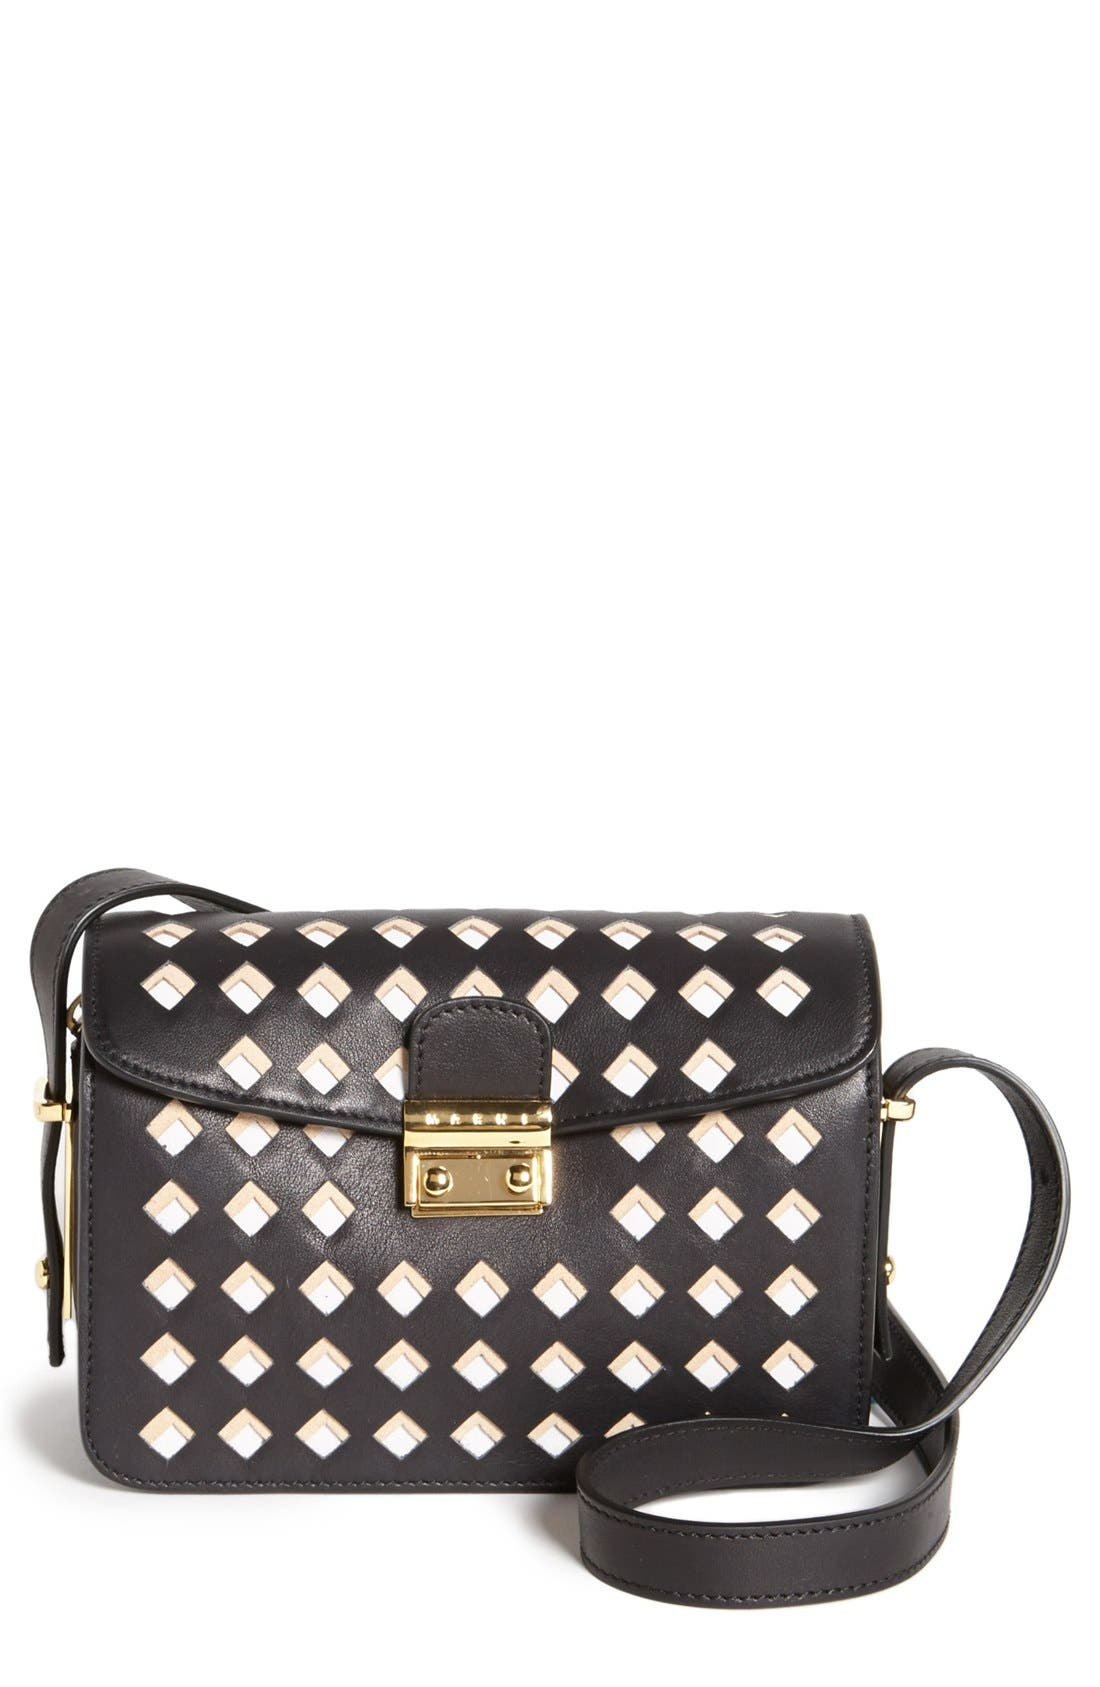 Main Image - Marni Cutout Crossbody Bag